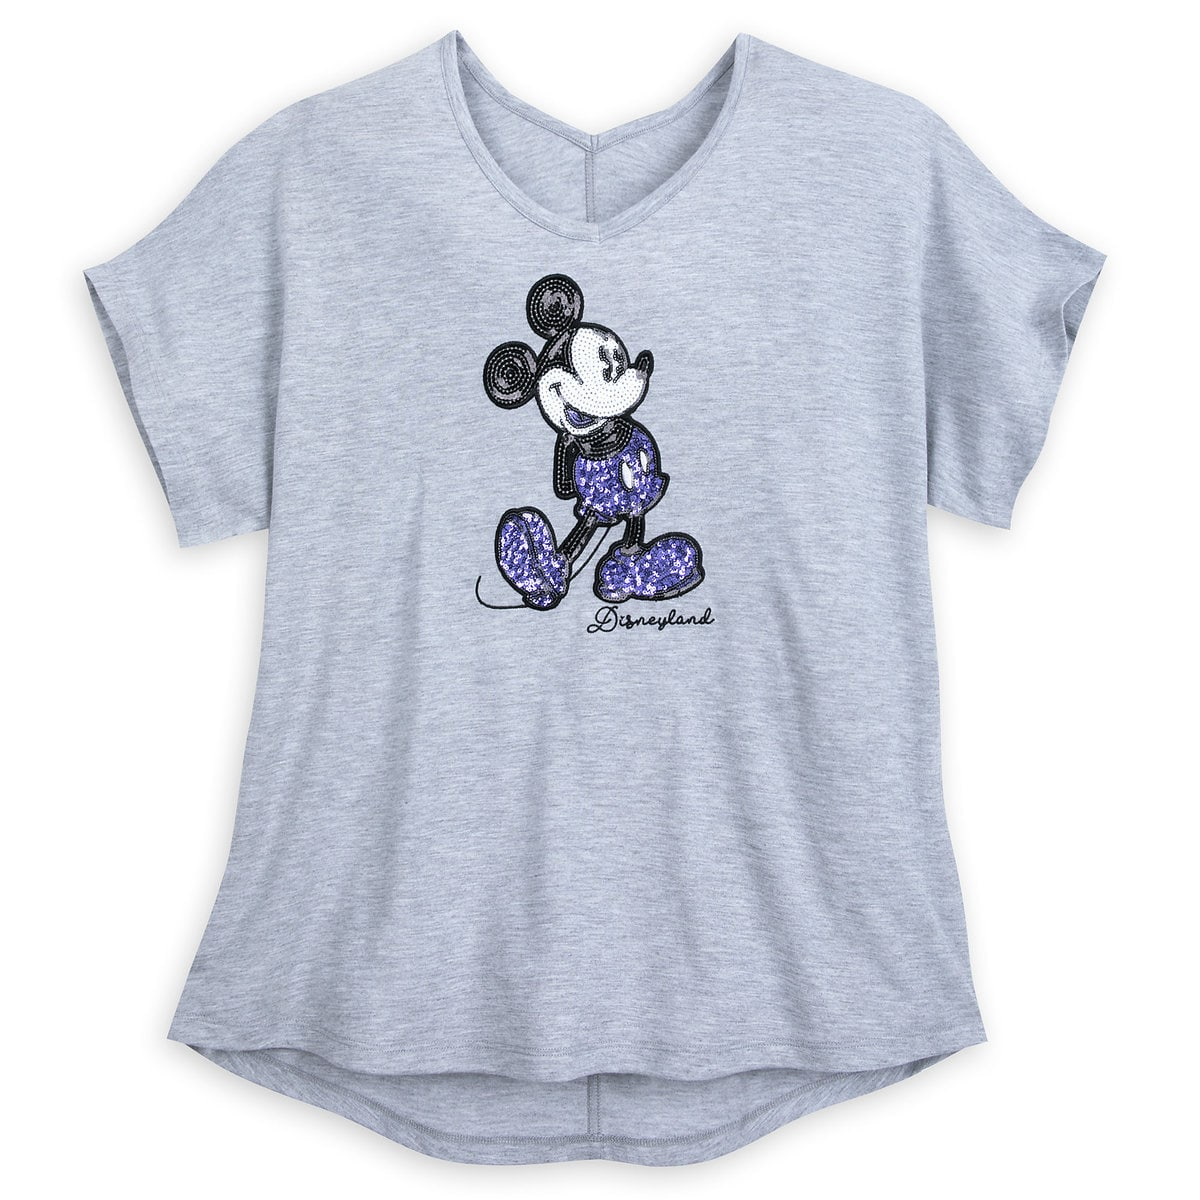 c60bf1229 Product Image of Mickey Mouse Sequined T-Shirt for Women - Potion Purple -  Disneyland